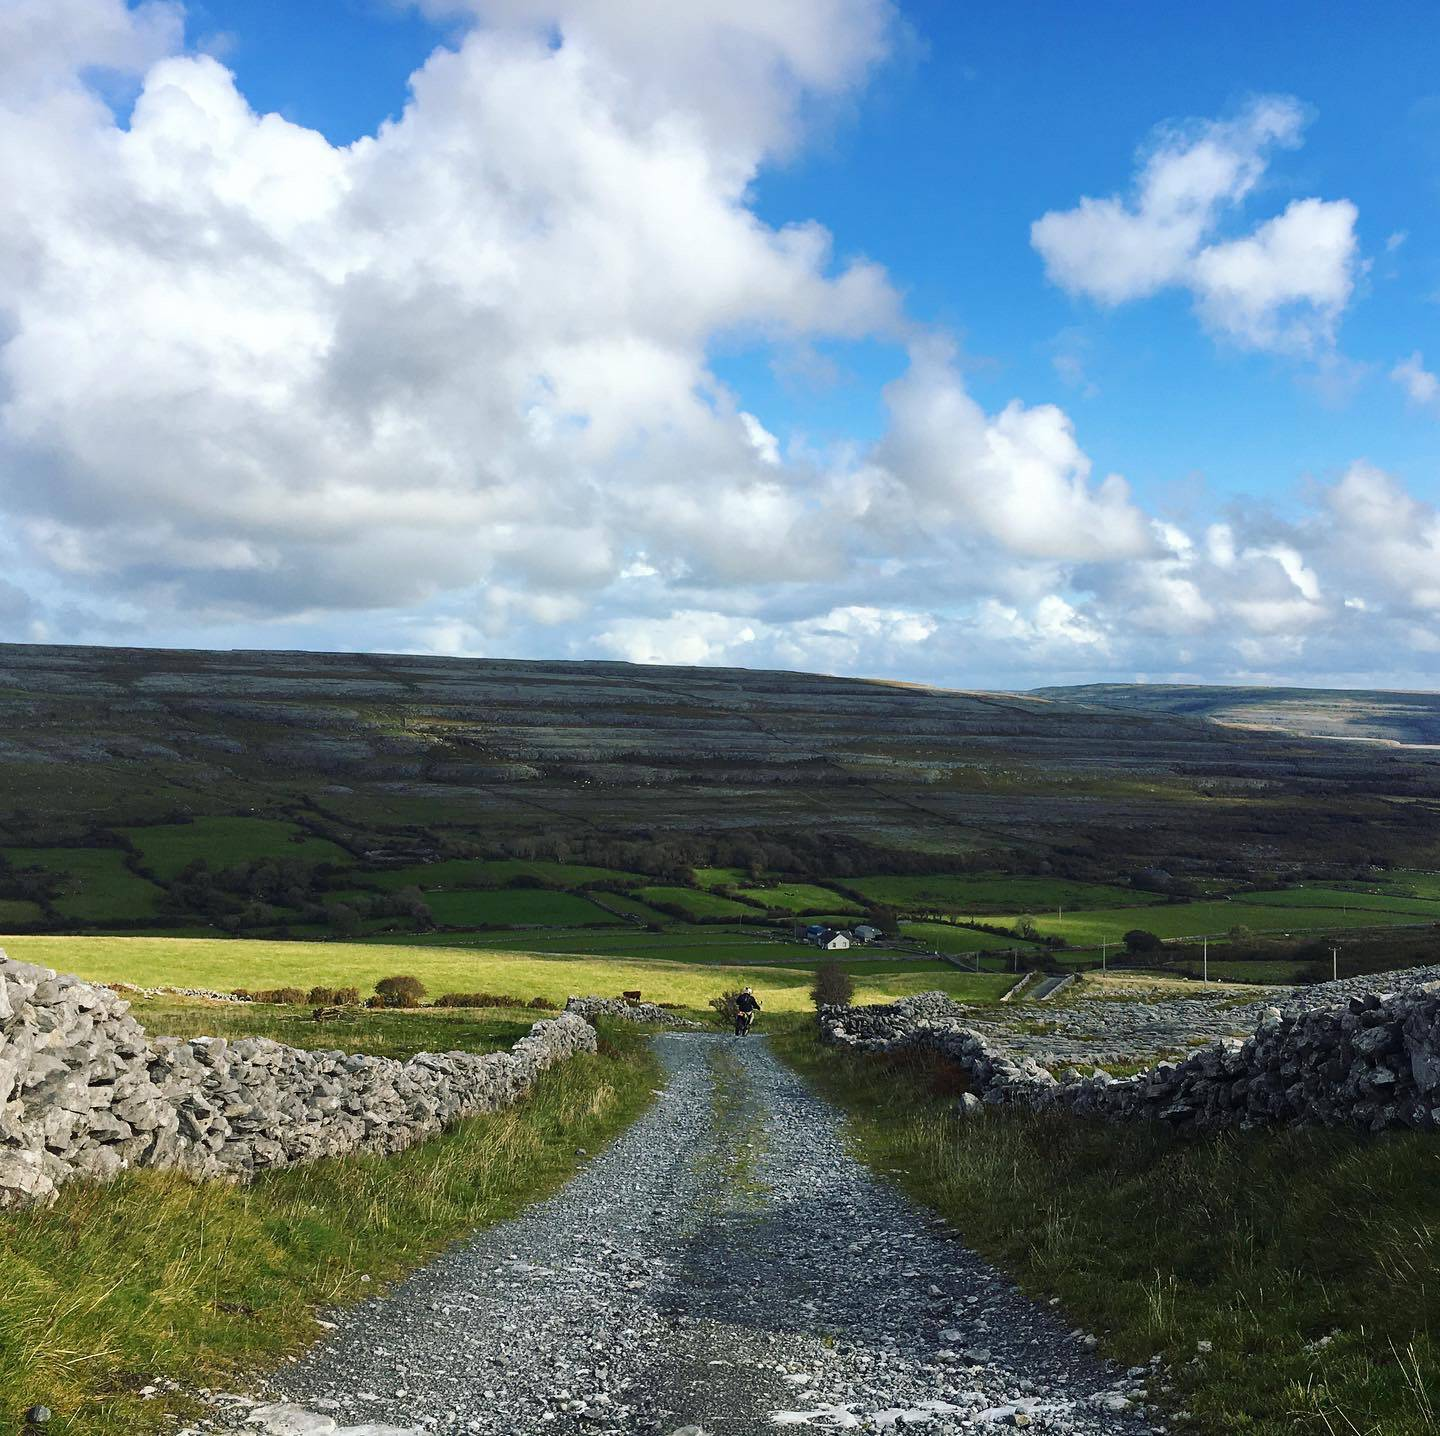 Vistas from the Burren between Fanore and Ballyvaghaun